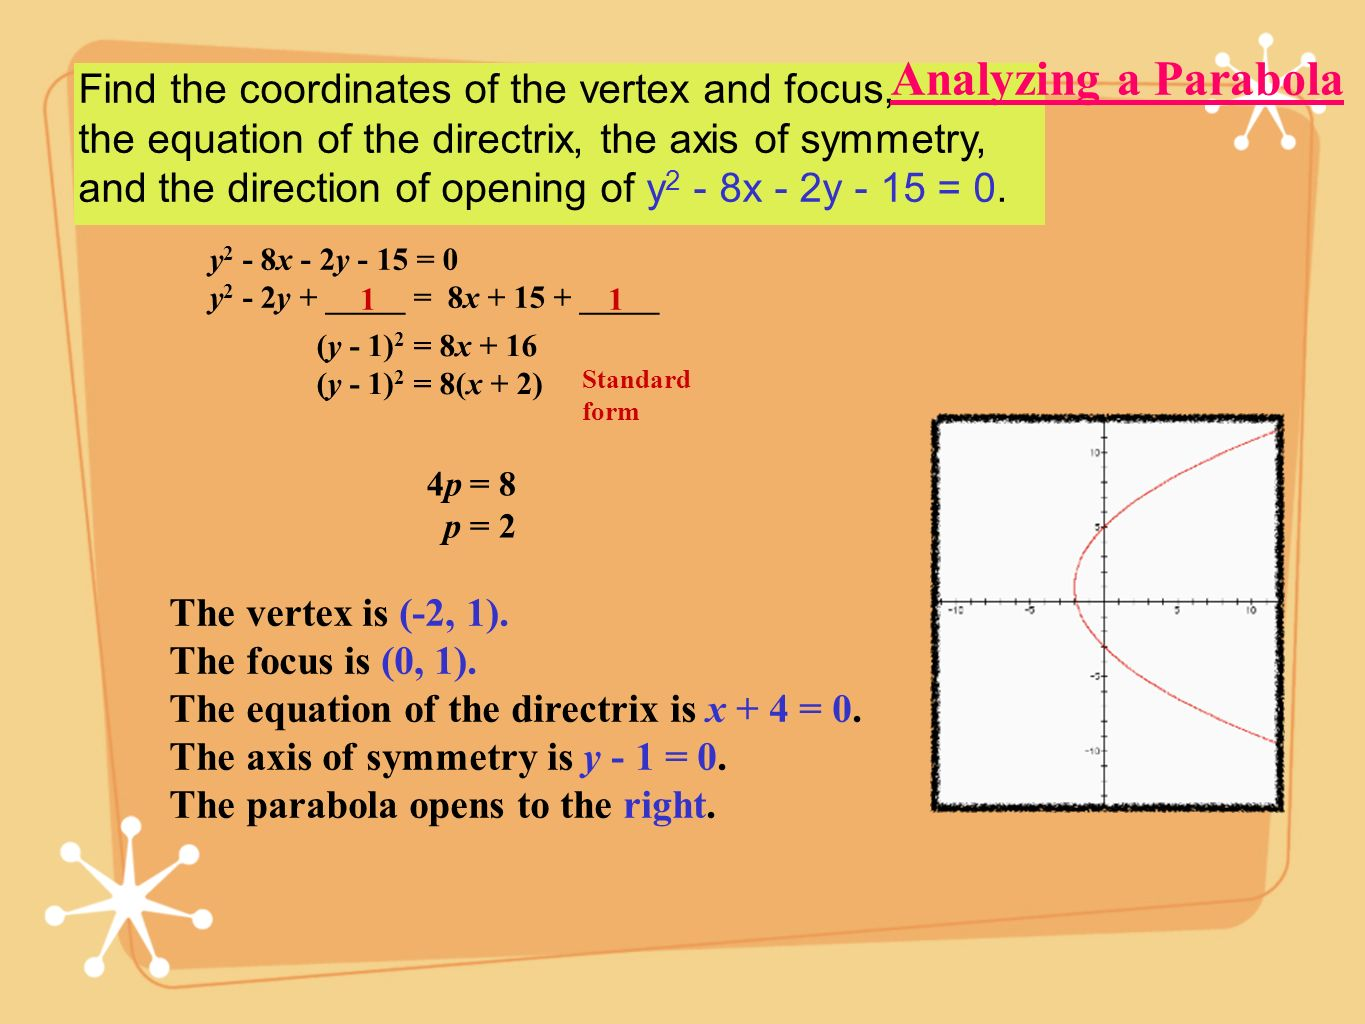 Parabola conic section ppt video online download analyzing a parabola find the coordinates of the vertex and focus falaconquin